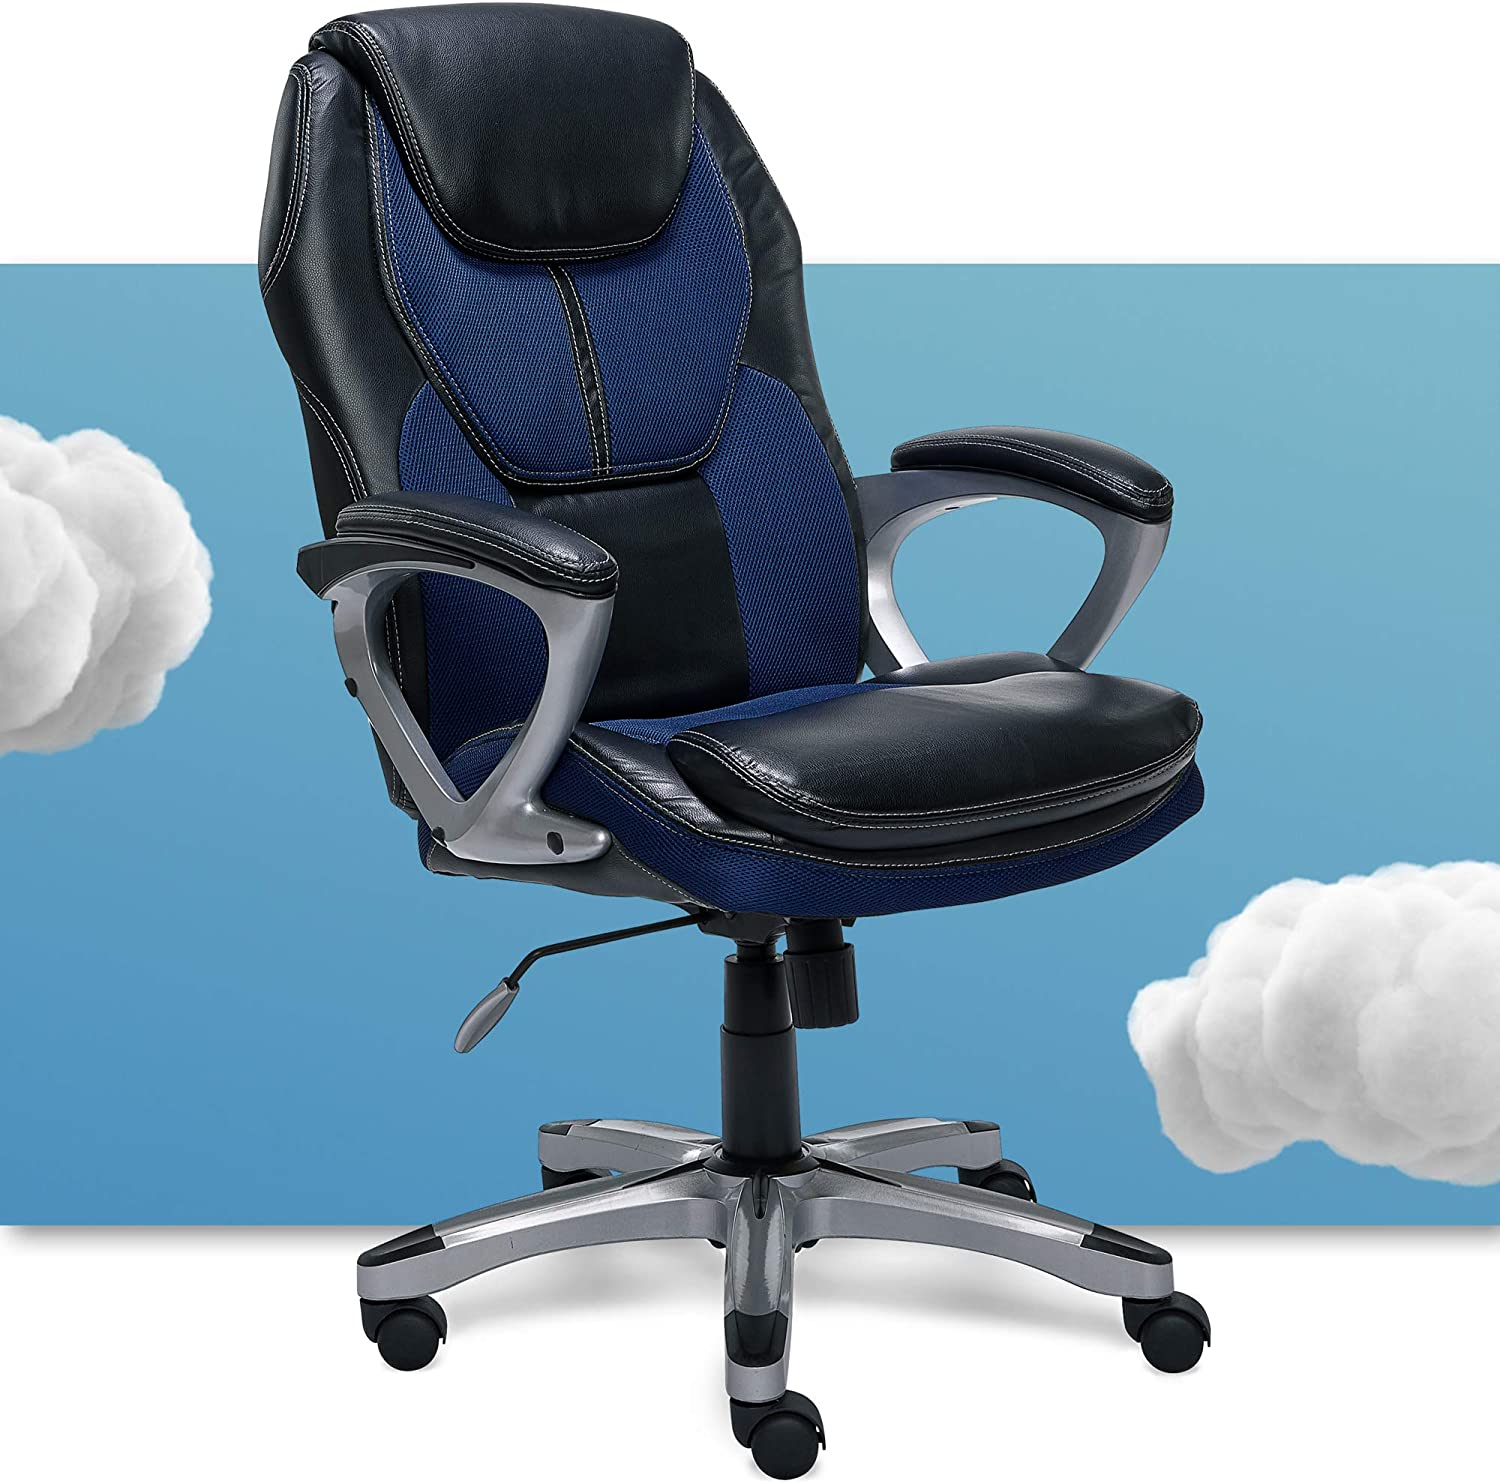 Serta Executive Office Padded Arms Adjustable Ergonomic Gaming Desk Chair with Lumbar Support, Faux Leather and Mesh, Black/Blue